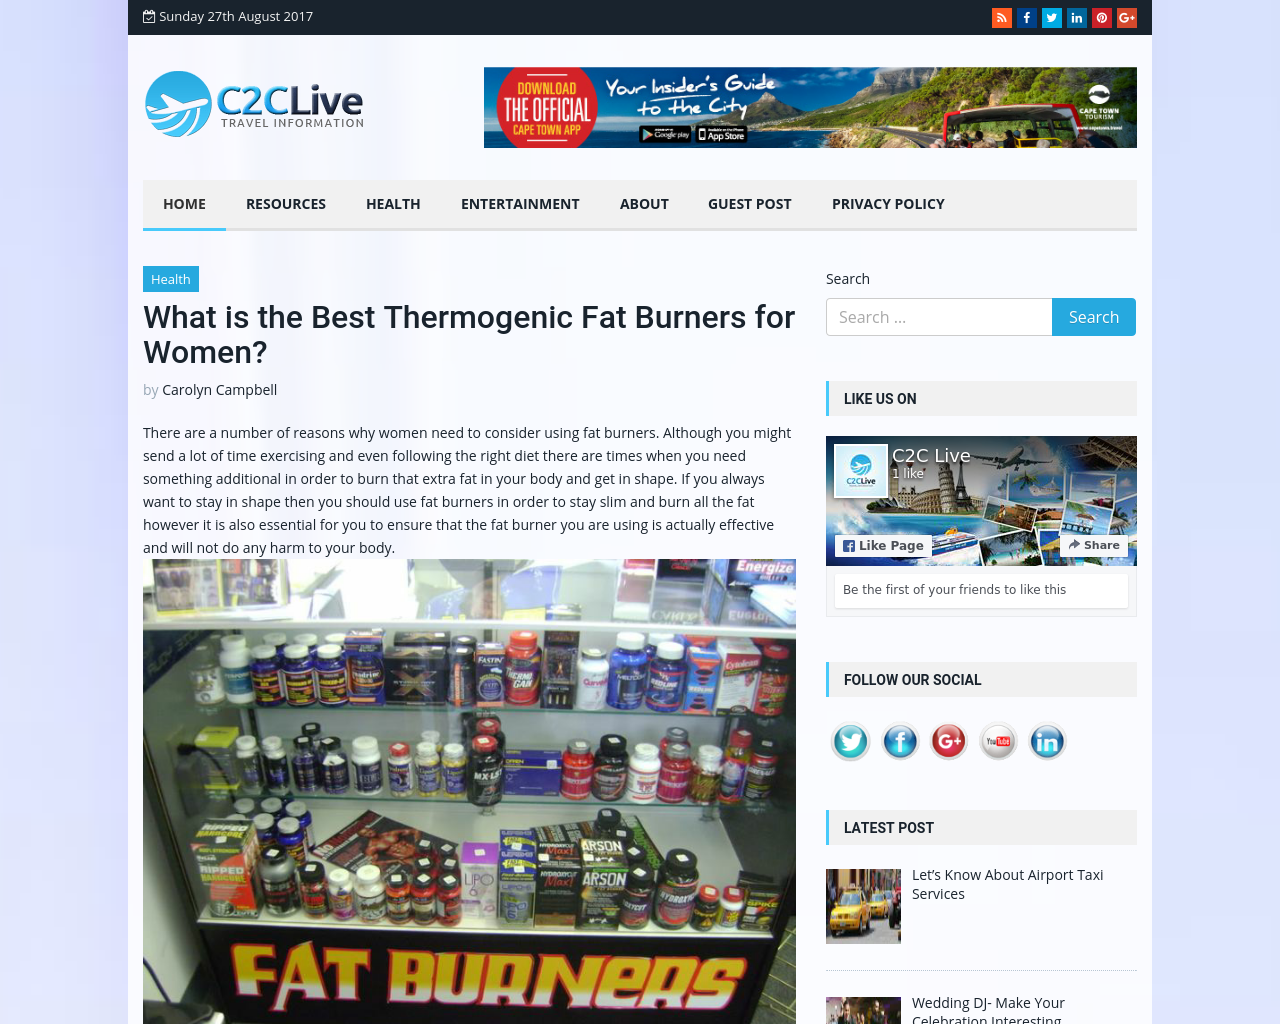 C2C-Live-Advertising-Reviews-Pricing